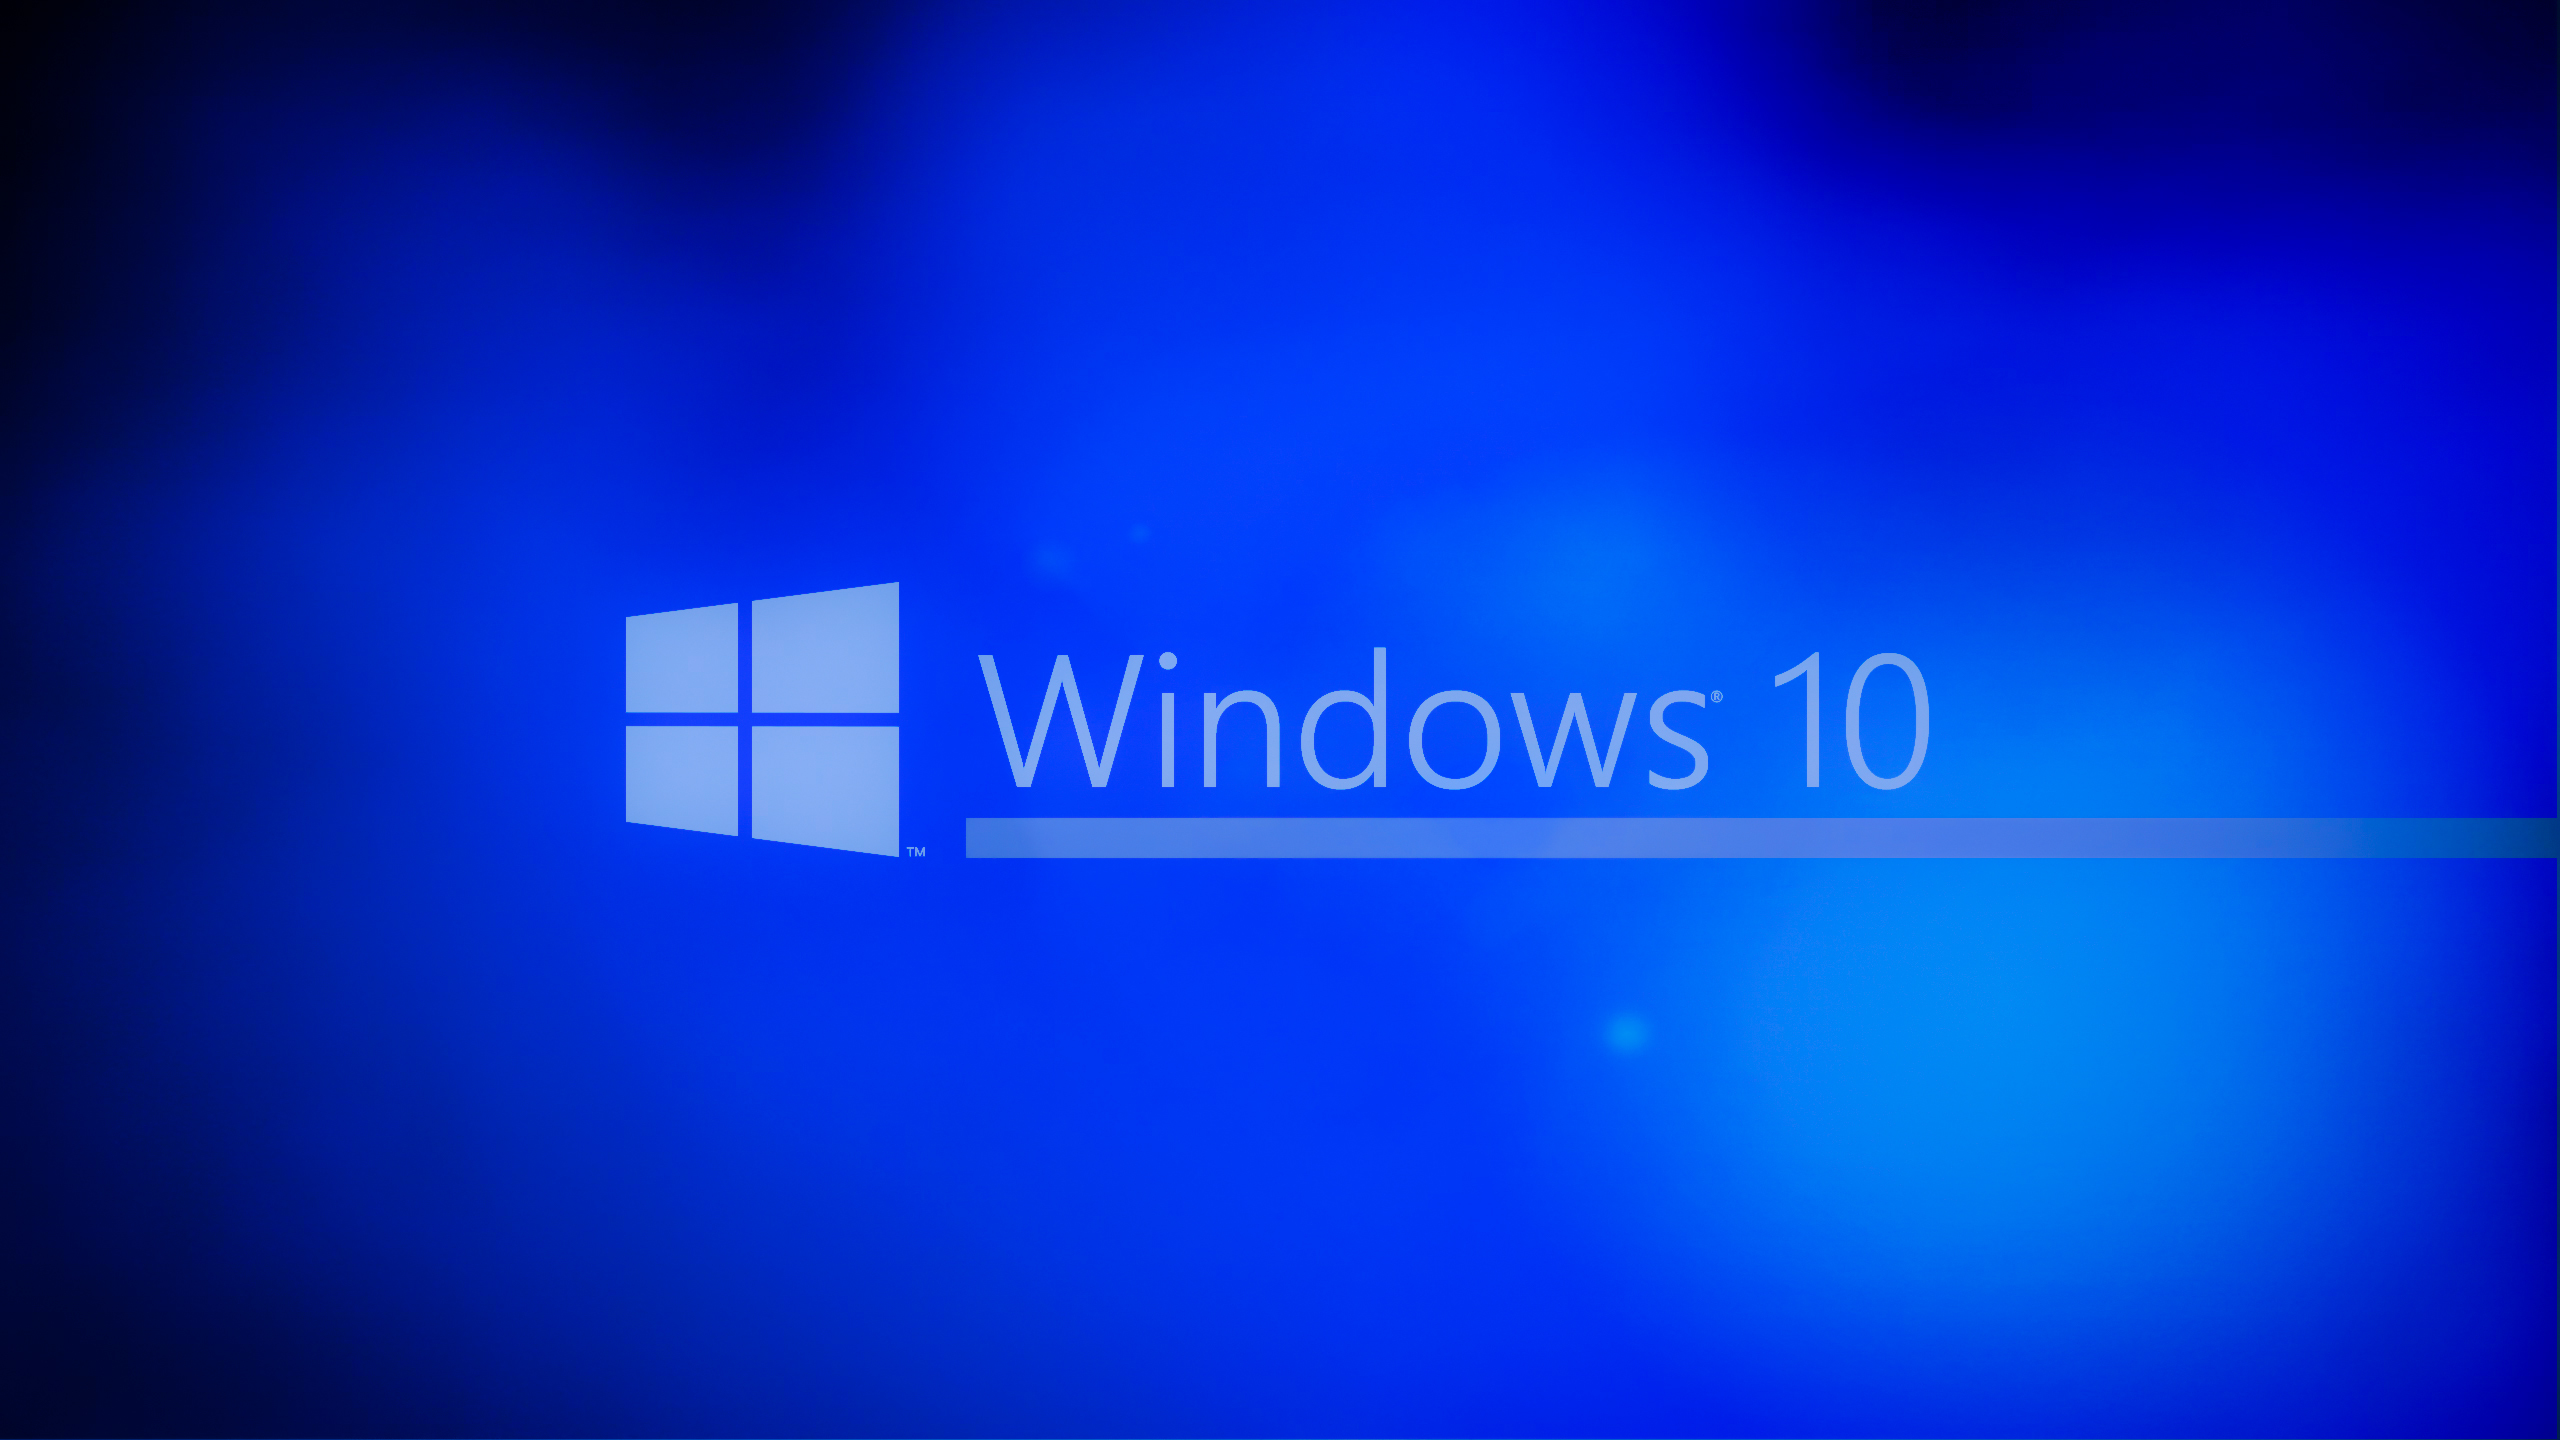 Windows 10 Wallpaper Logo Start   2   HD Wallpapers Desktop 2560x1440